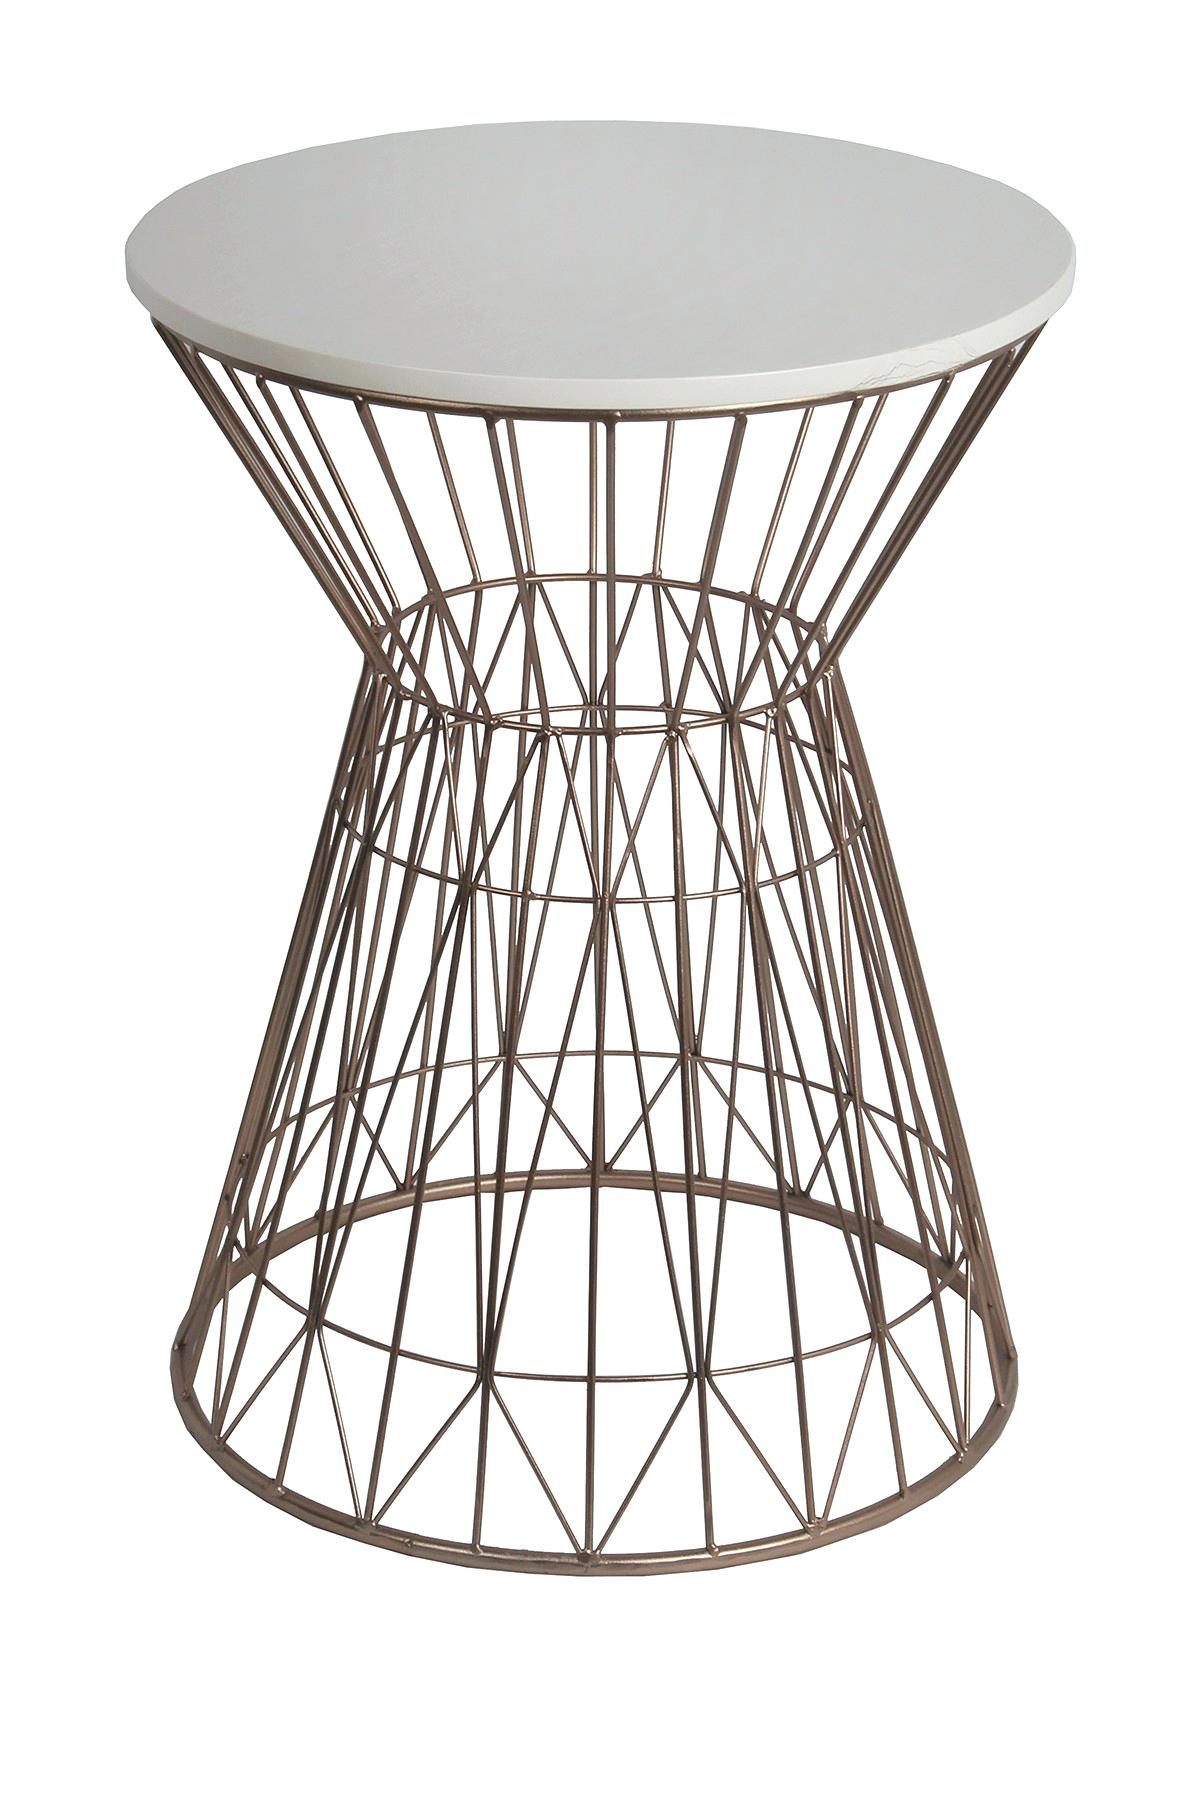 rose gold accent table round end ideas privilege home decor side white tomlin with glass top clear trunk coffee yellow lamp runner rugs ashley furniture chicago cocktail linens